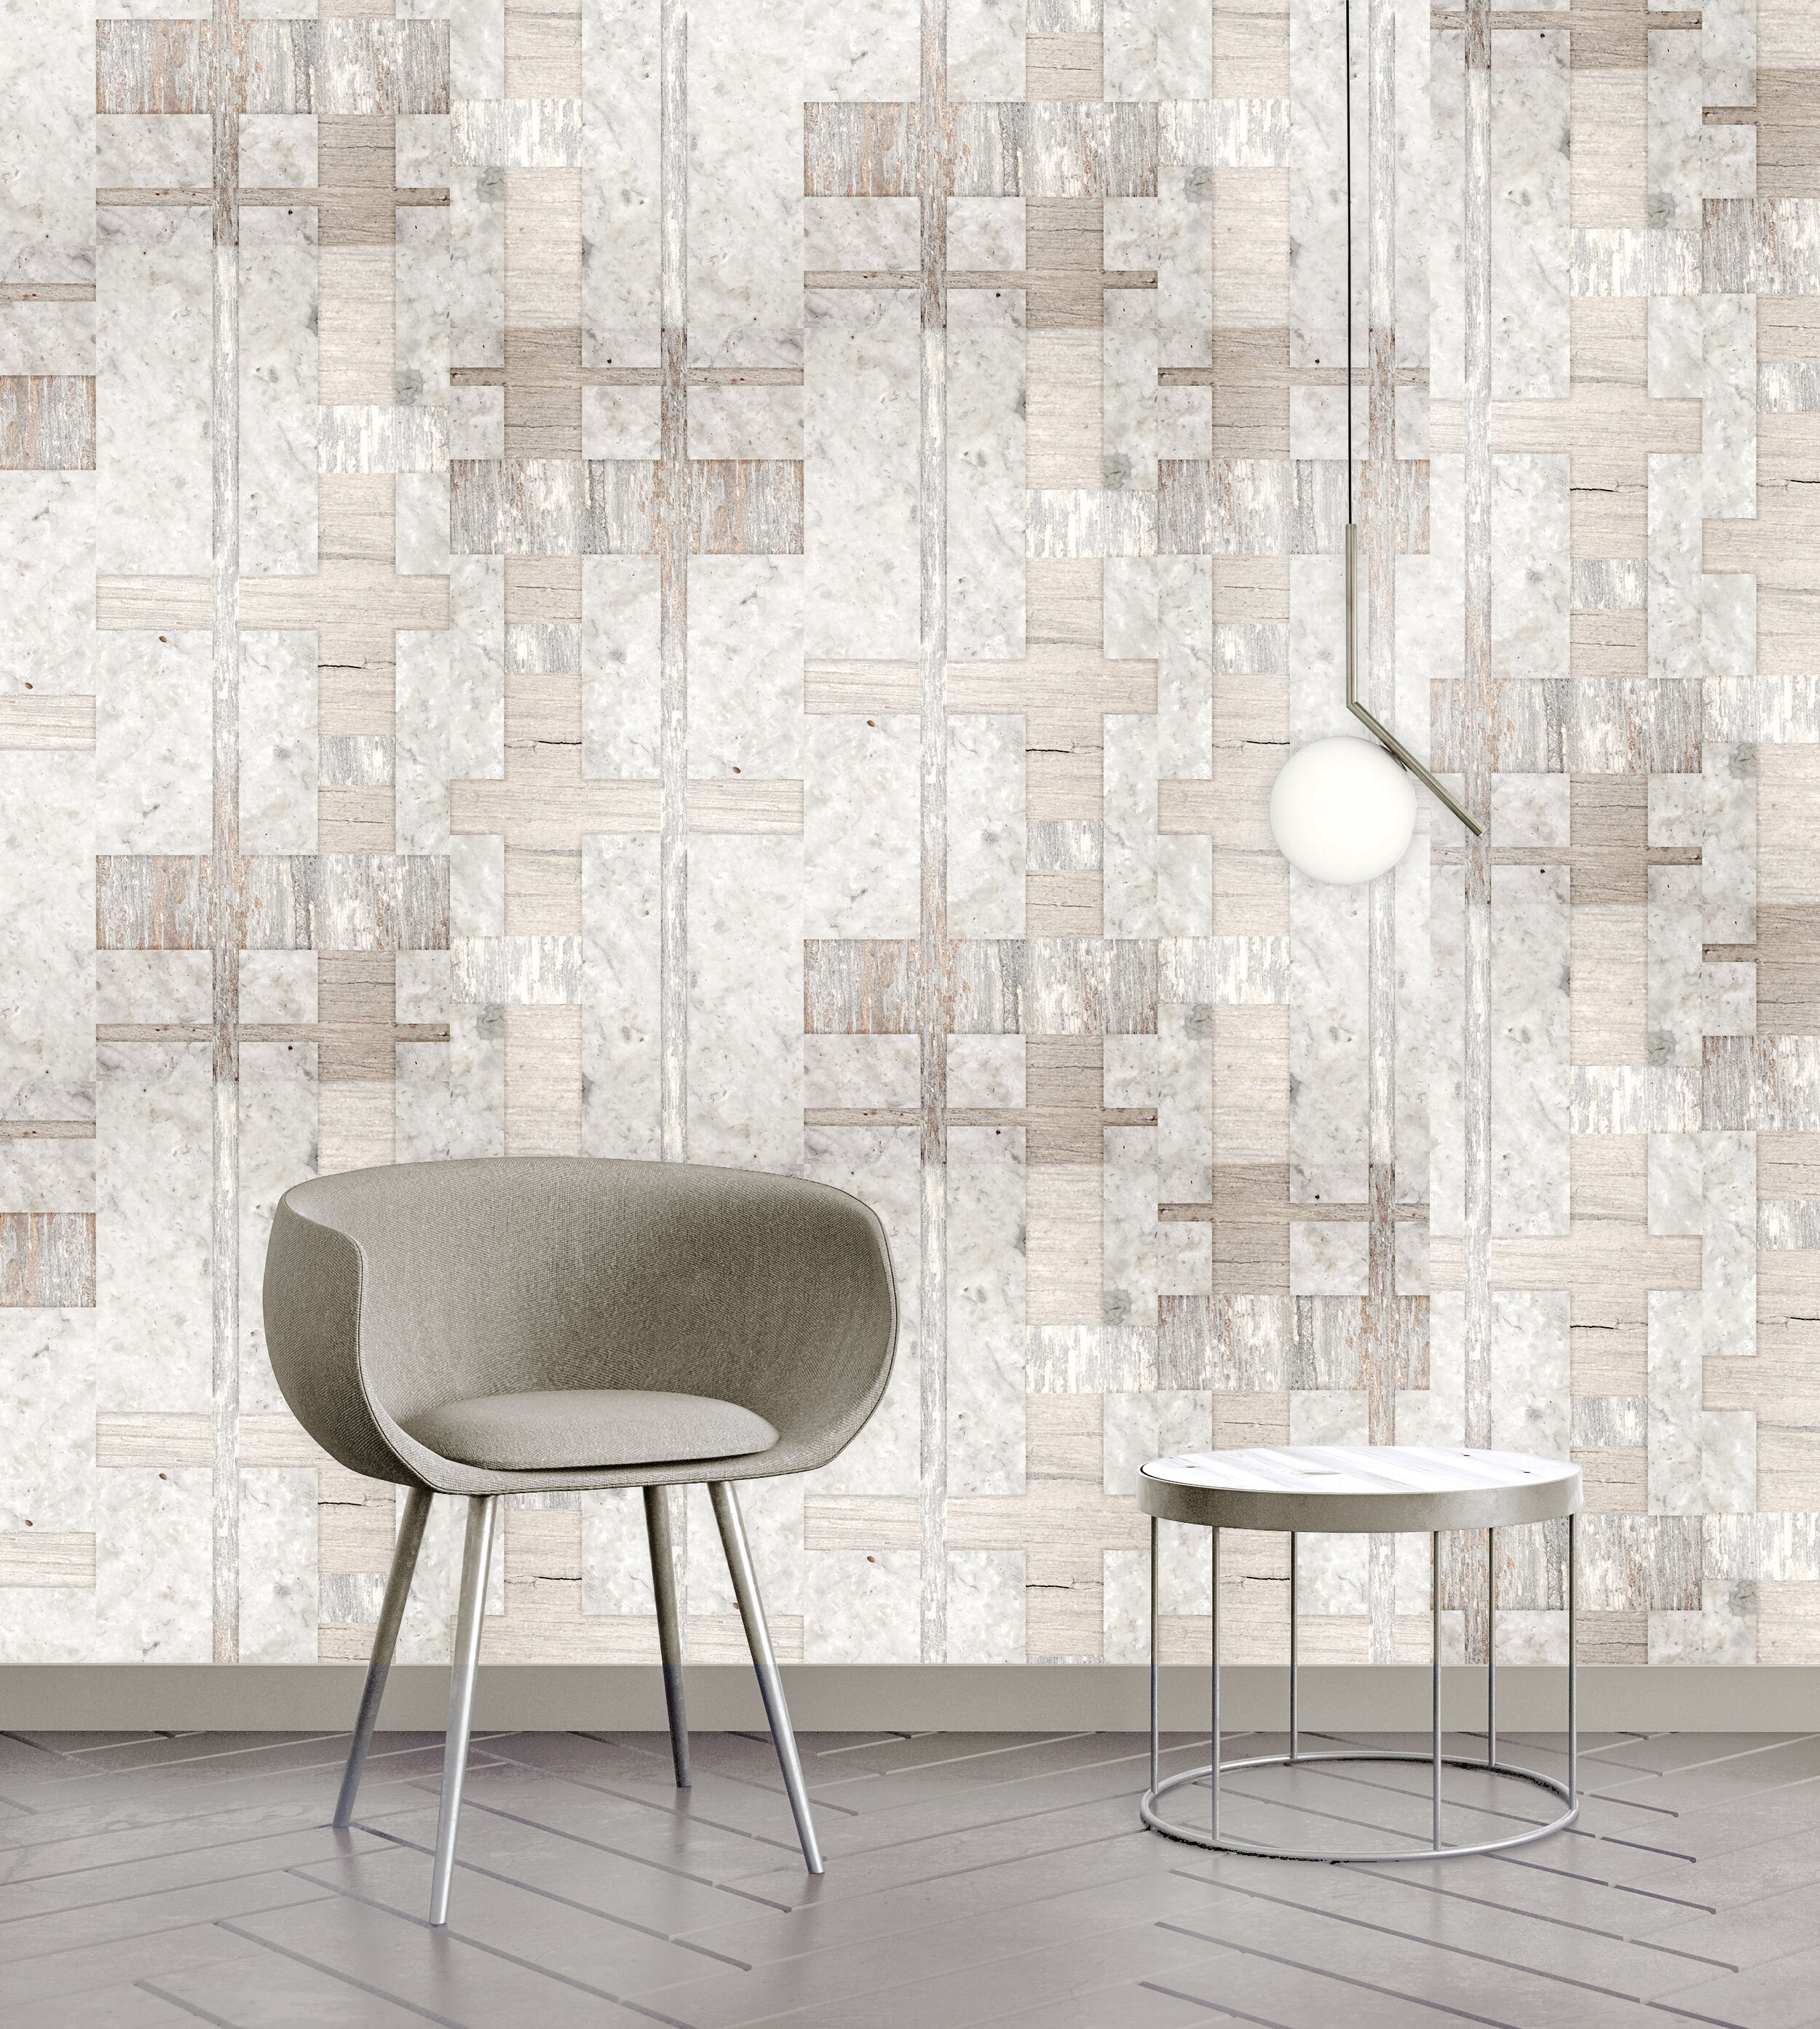 Kings Landing  {Eco friendly recycled Type II} also available on Iridescent natural grasscloth